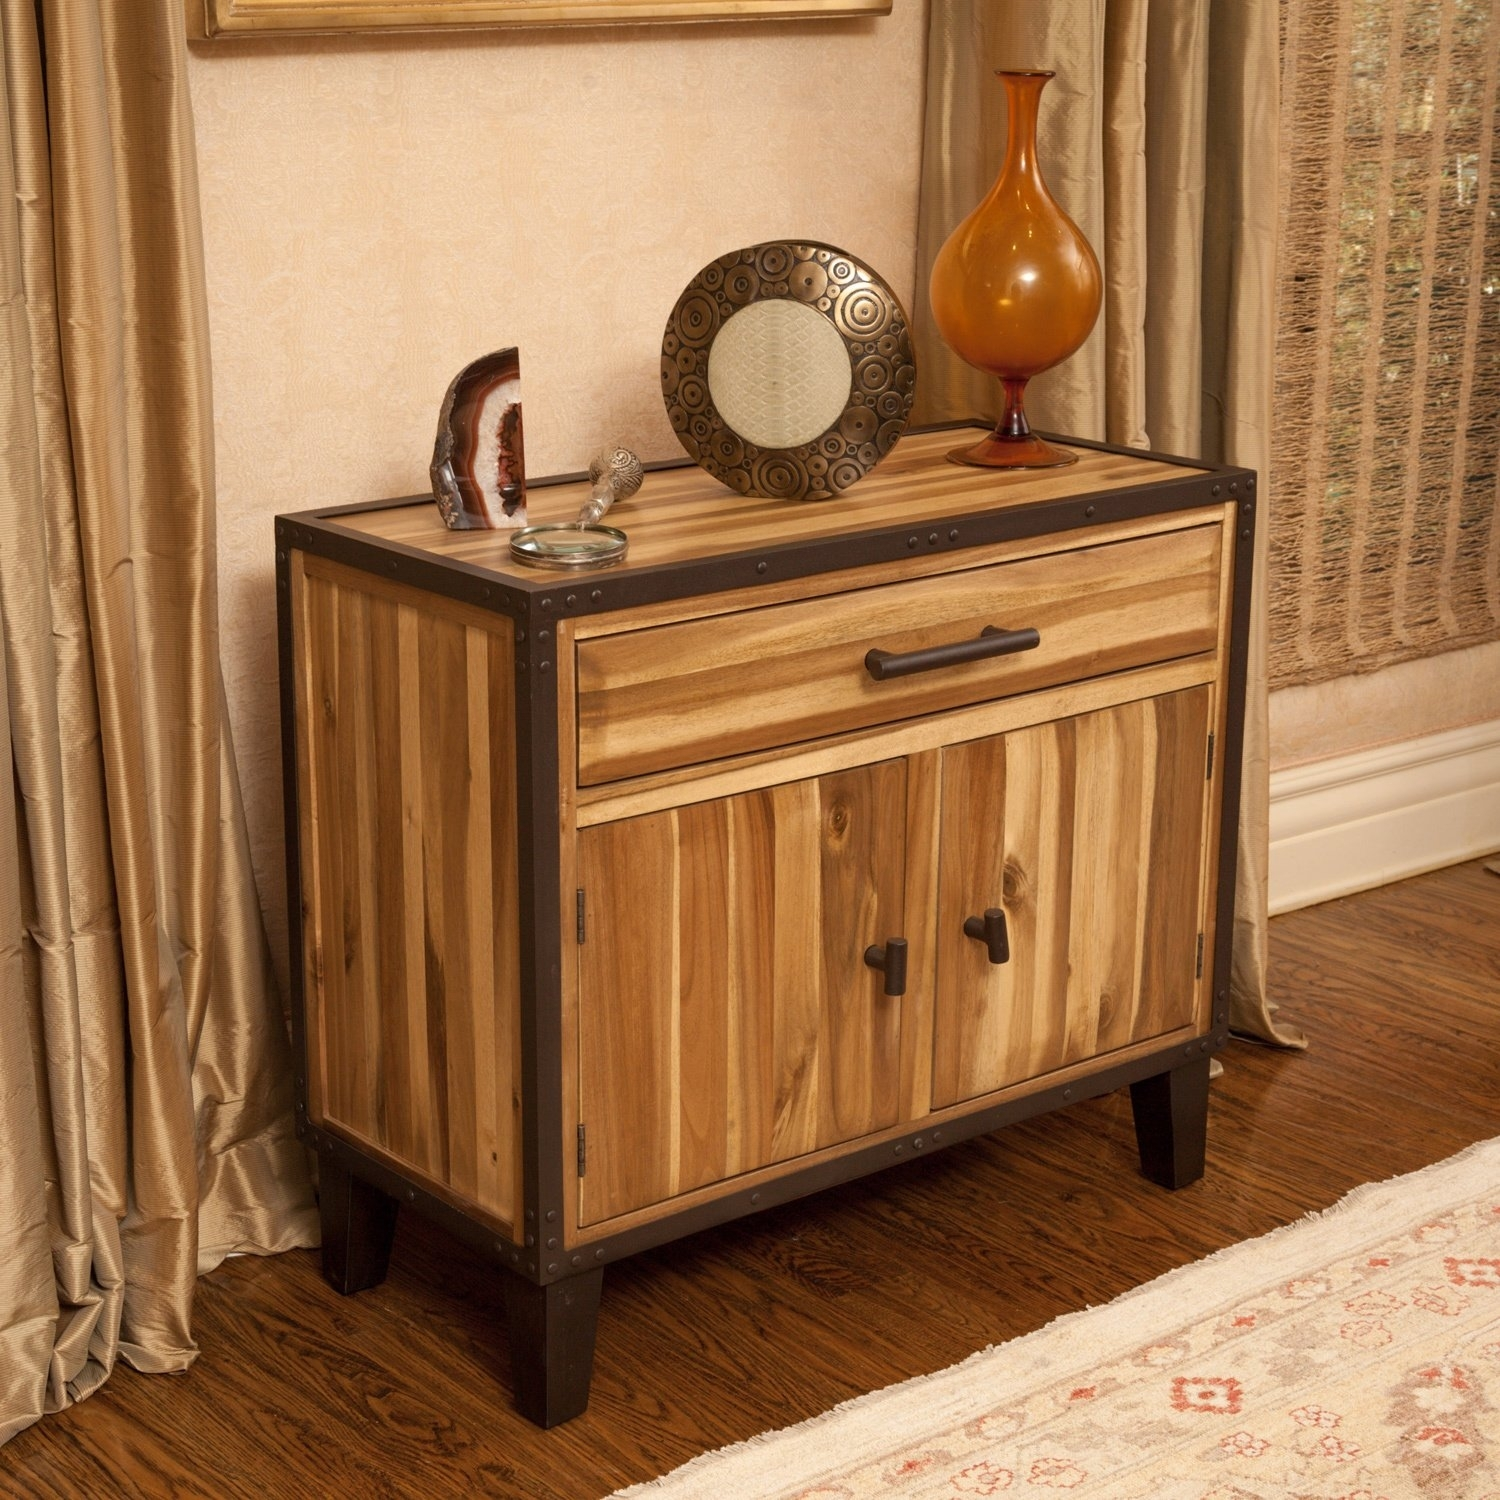 Buy Natural Finish, Entryway Table Online At Overstock | Our in Mandara 3-Drawer 2-Door Sideboards (Image 5 of 30)